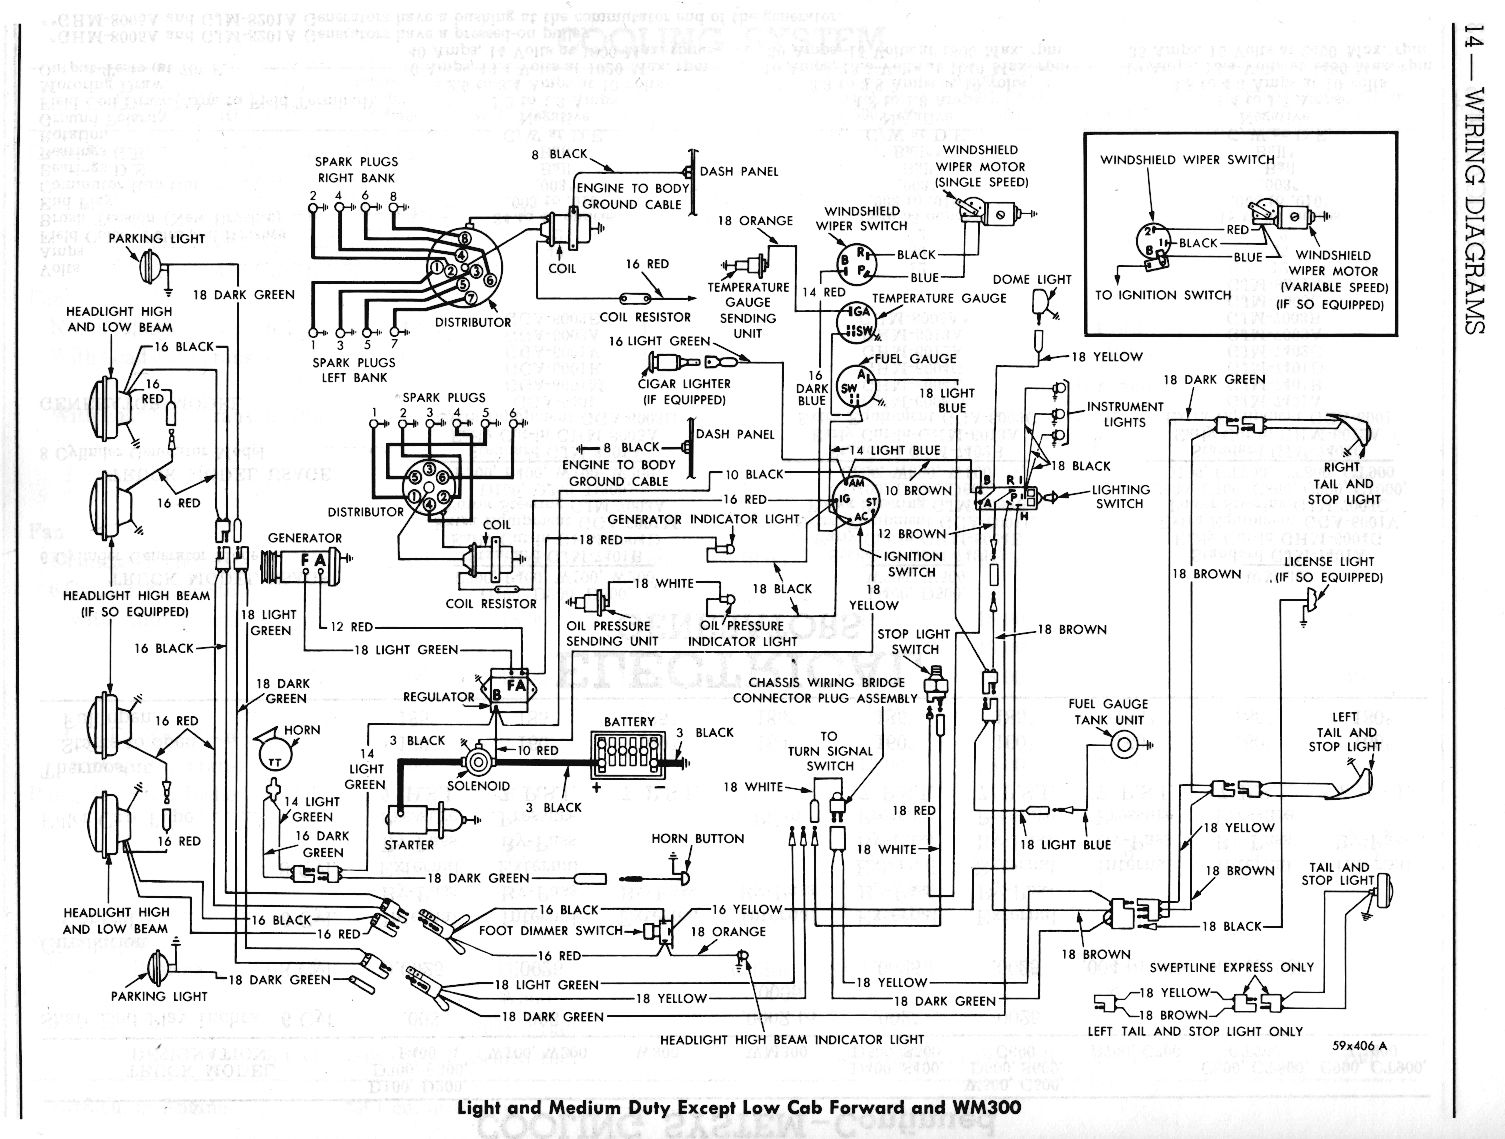 wire_dia_60d_w100 94998147 led dual sport wiring diagram 29 wiring diagram images wiring